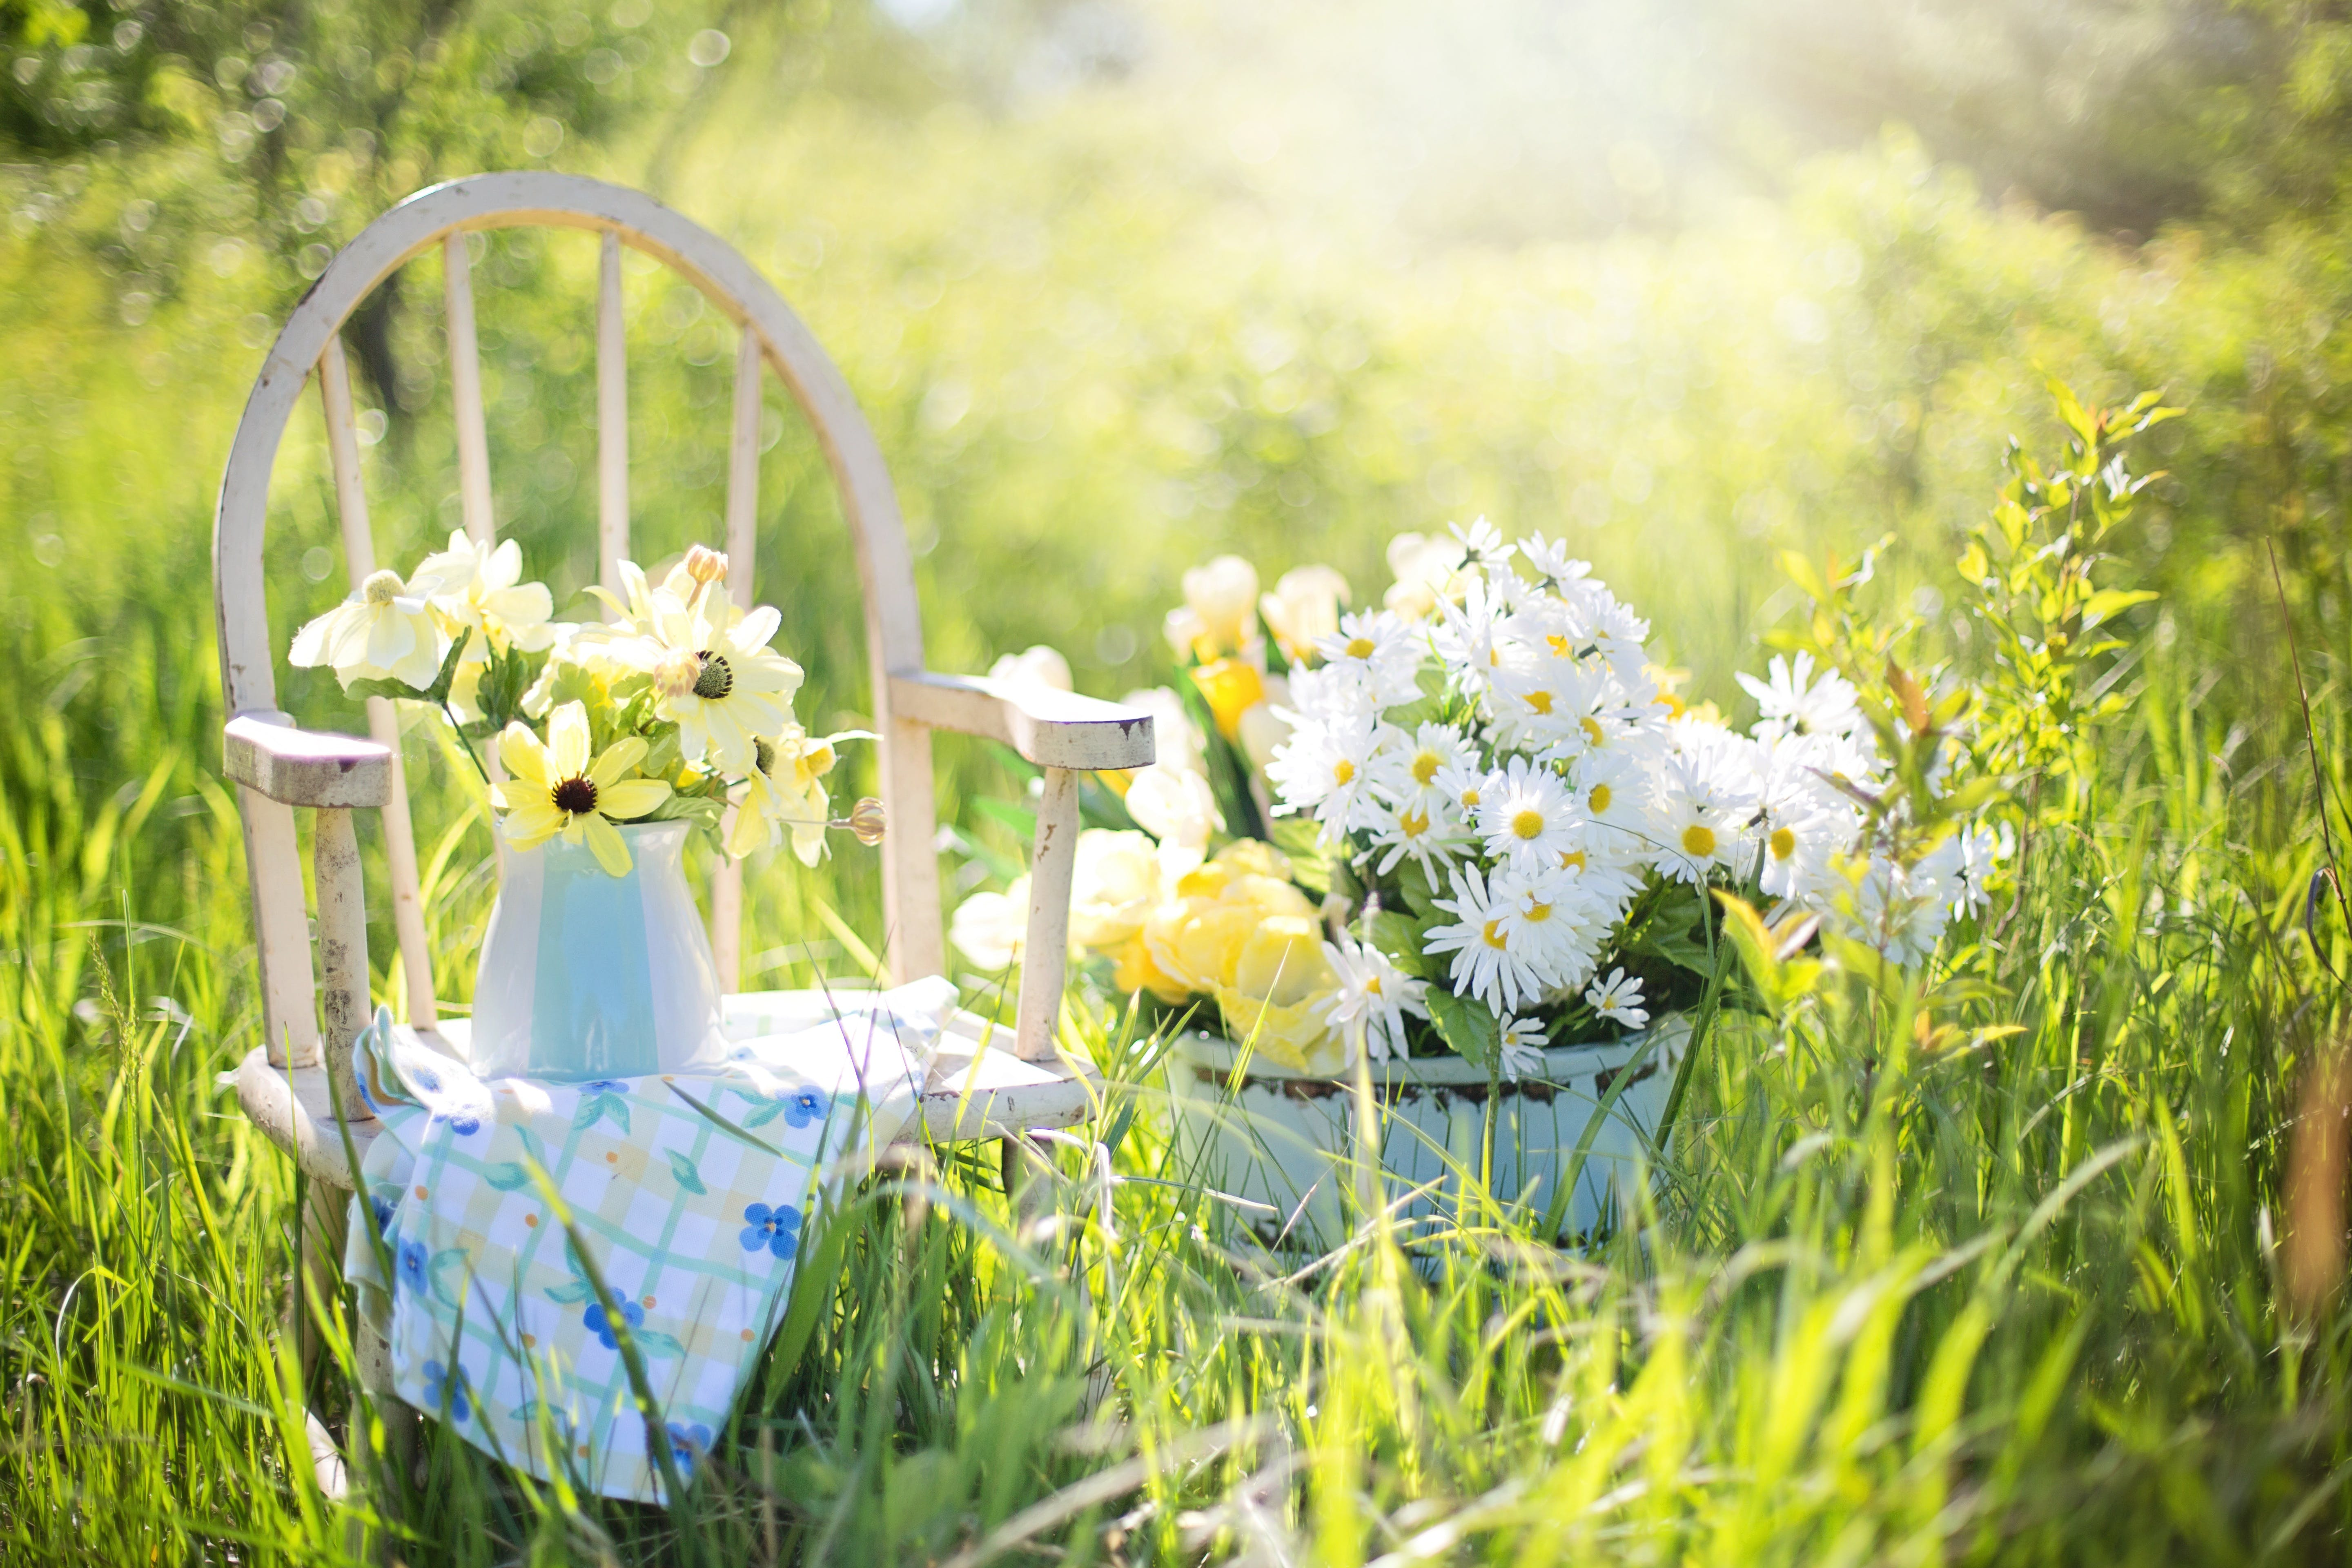 White Daisies on Blue Ceramic Pot Beside White Wooden Armchair on Green Grass Field during Daytime